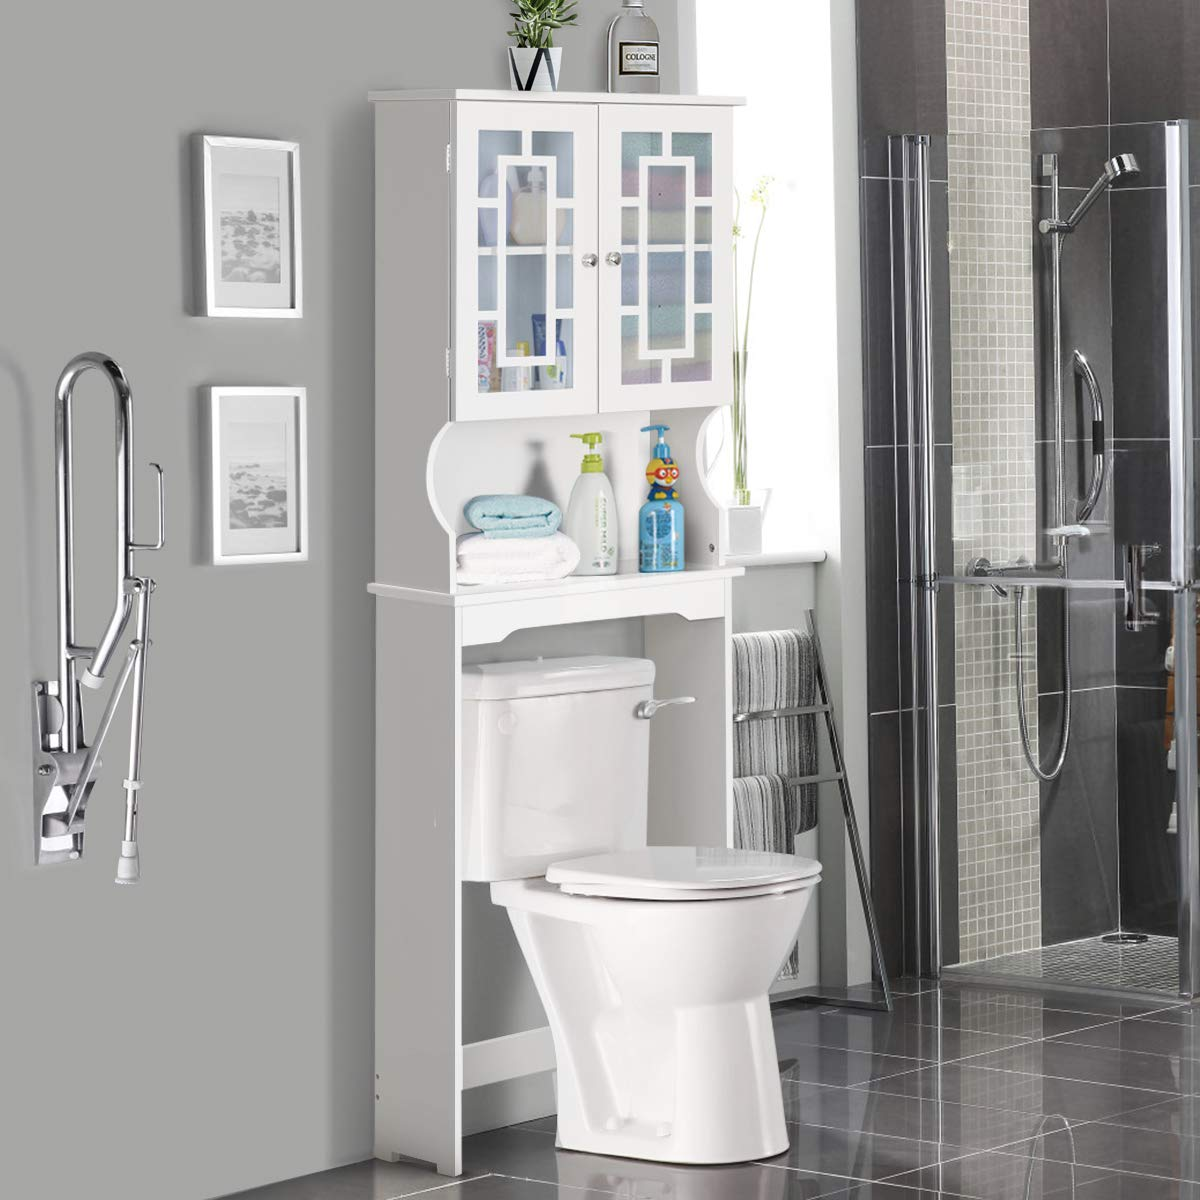 Giantex Over-The-Toilet Bathroom Storage Space Saver W/Shelf and 2-Door Collect Cabinet (White)